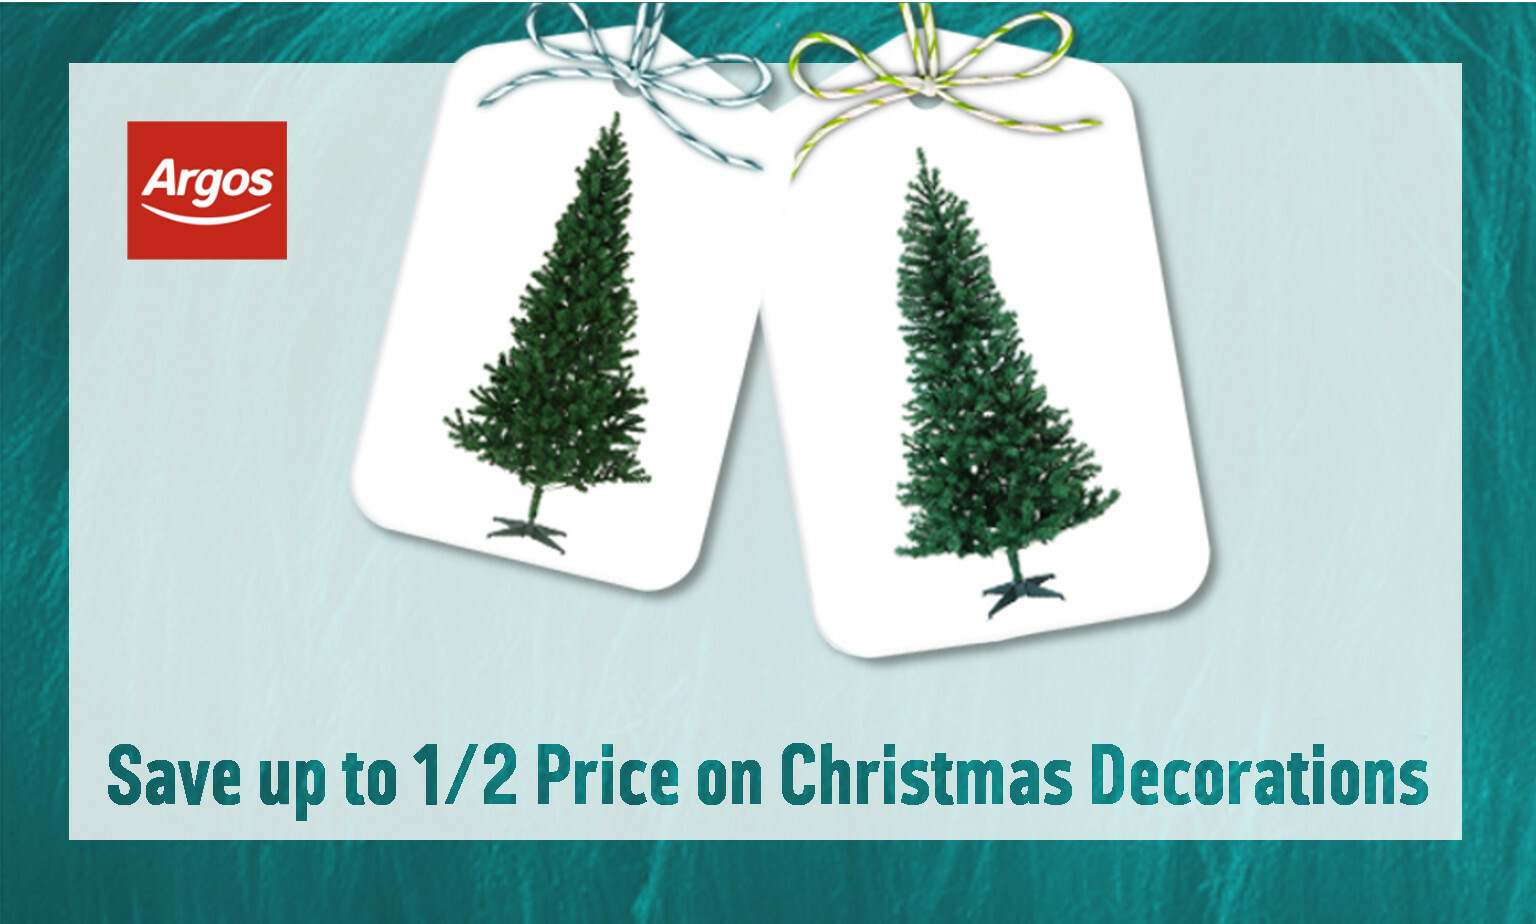 Save up to ½ price on Christmas Decorations